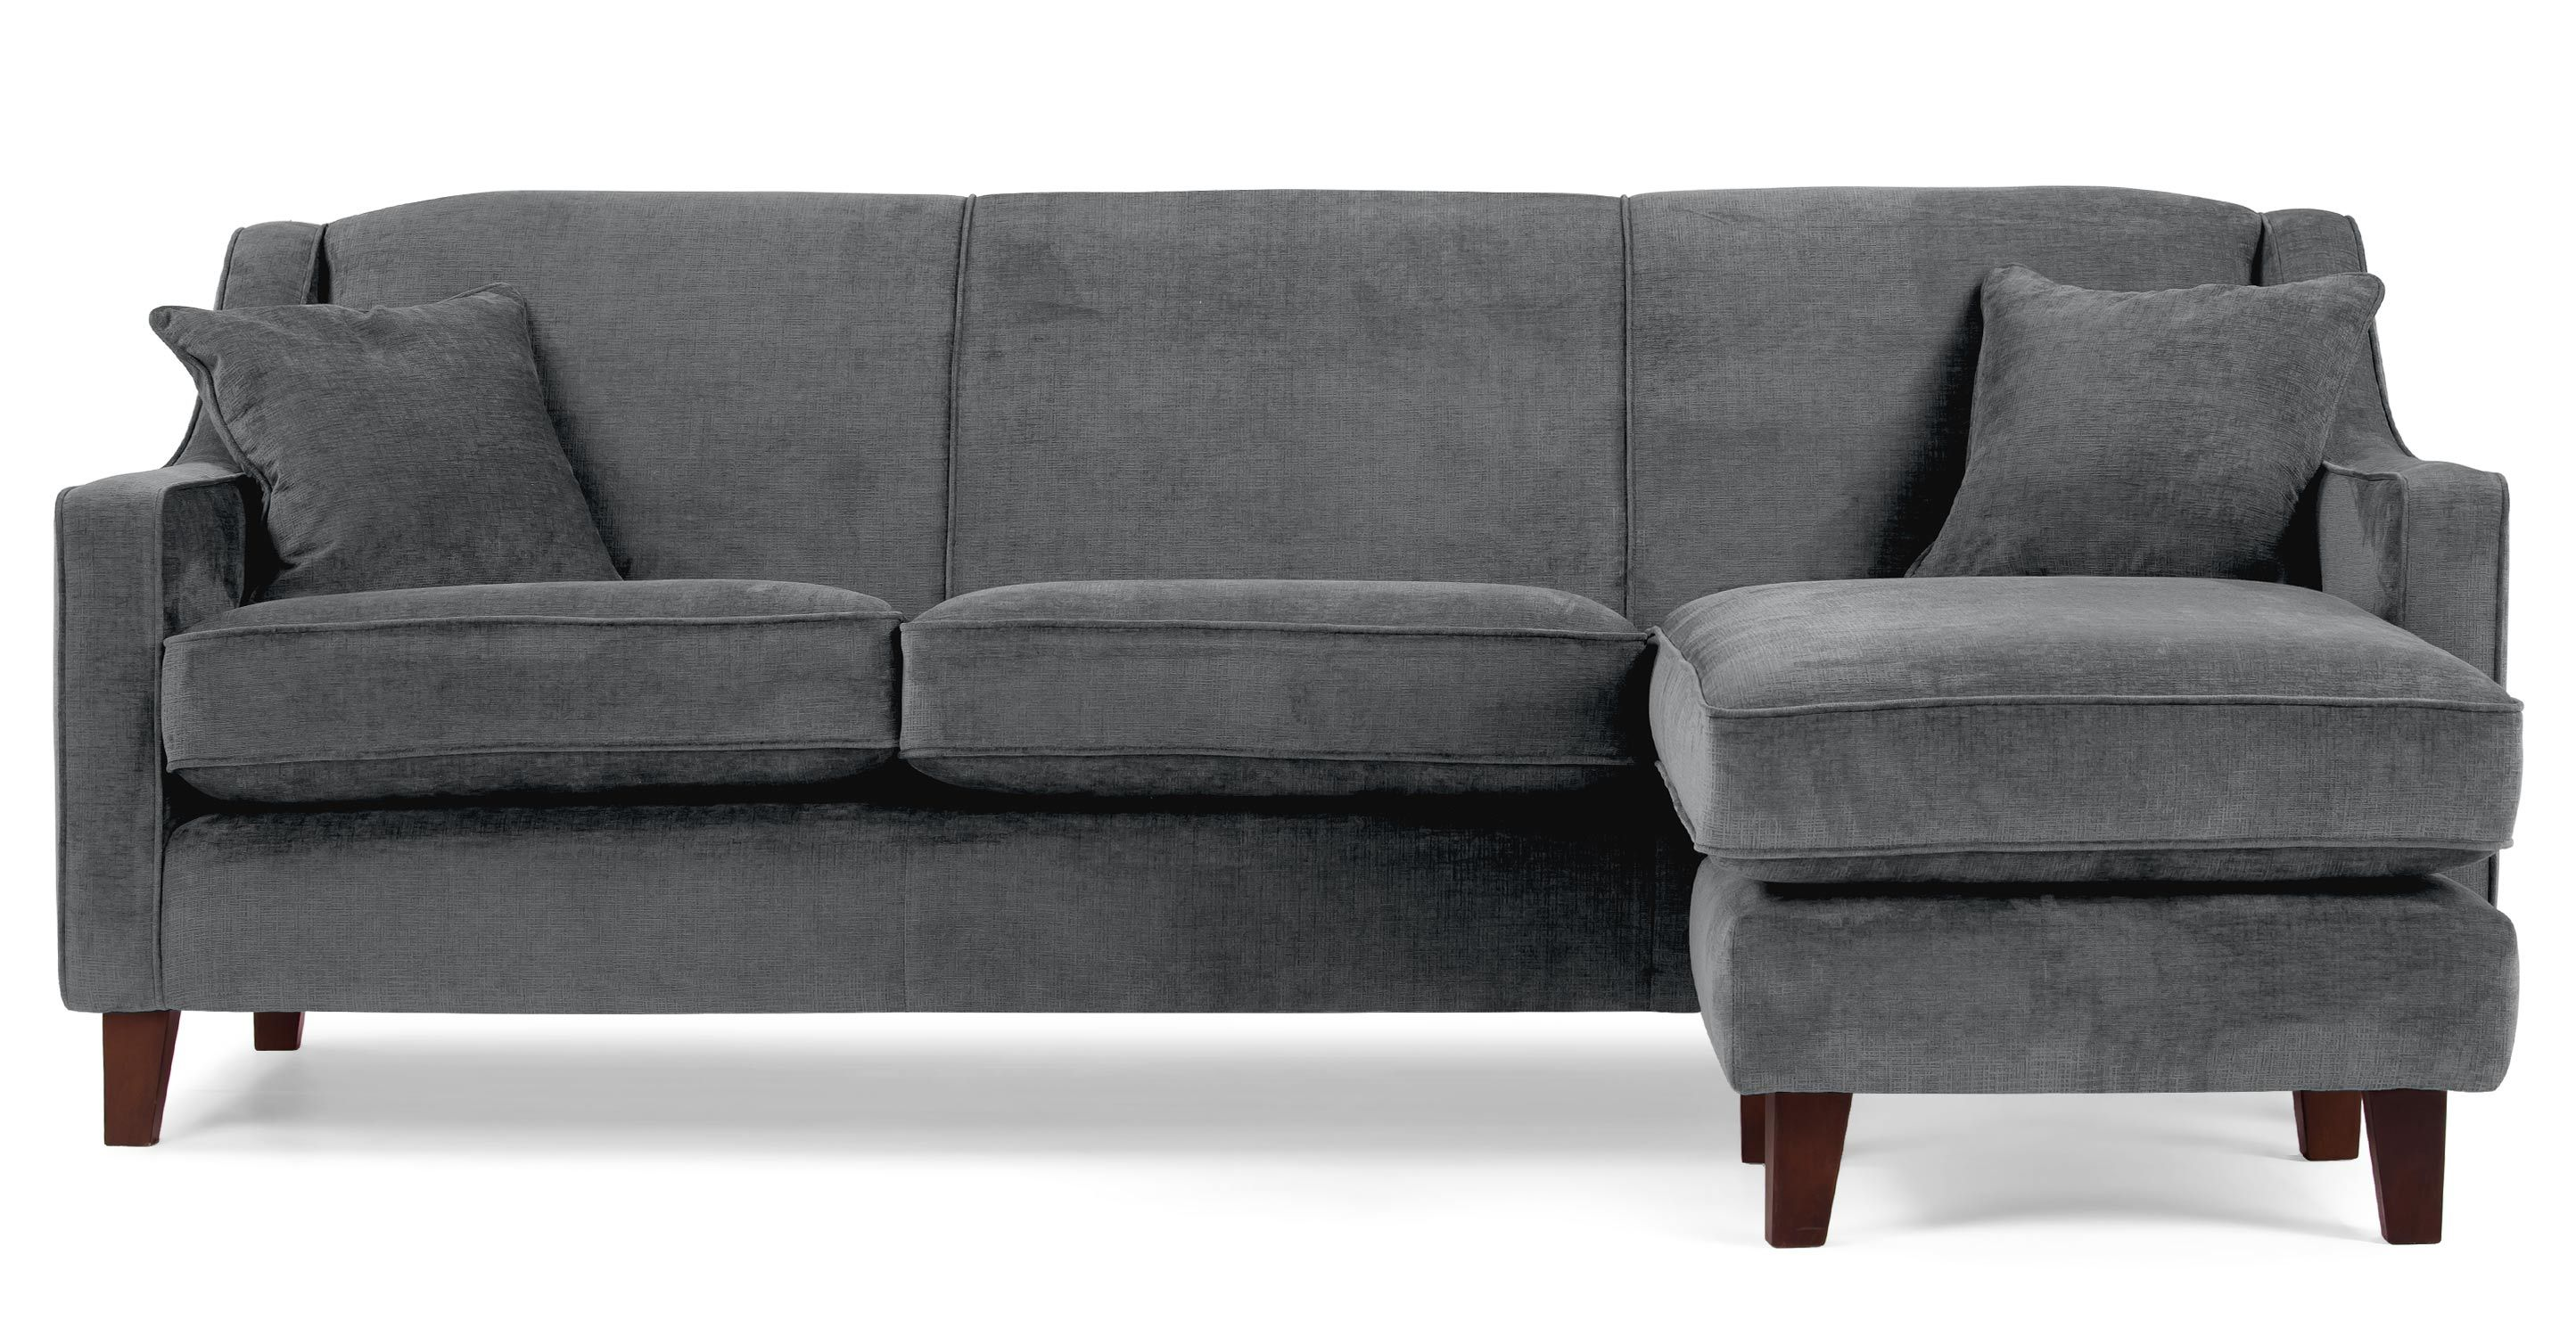 Halston Corner Sofa in dusk grey